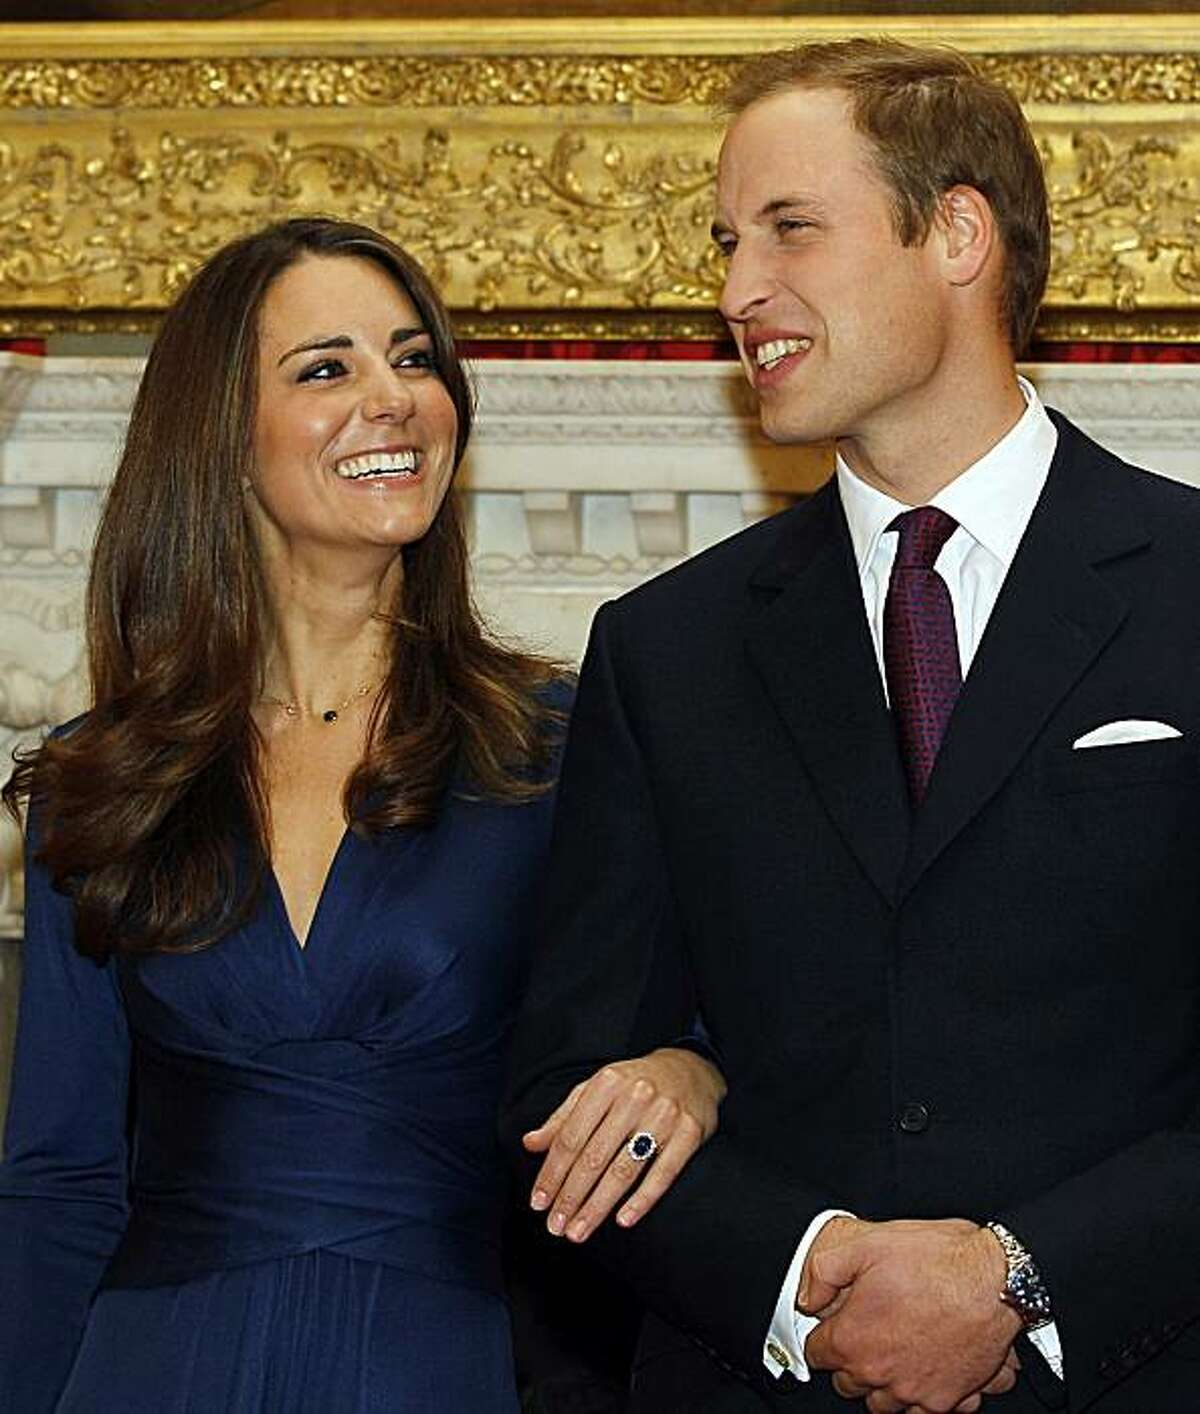 FILE - In this Nov. 16, 2010 file photo, Britain's Prince William and his fiancee Kate Middleton pose for the media at St. James's Palace in London, after they announced their engagement. Palace officials have announced Wednesday Jan. 5, 2011 will preside at the April 29 wedding of Prince Charles and Kate Middleton.